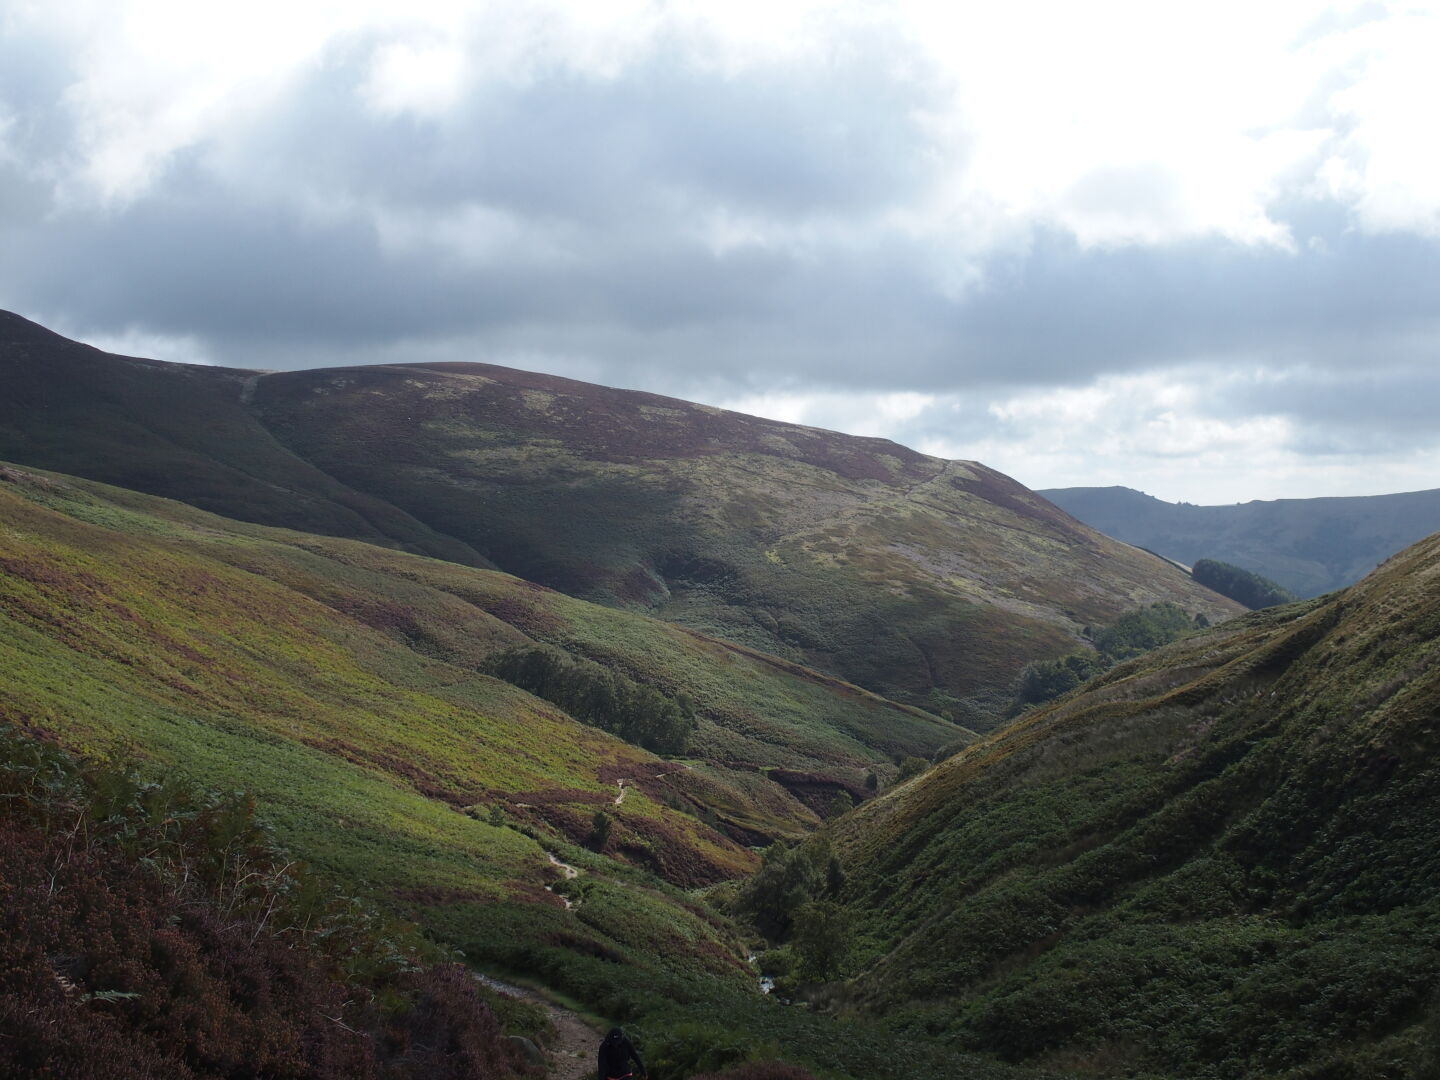 Grindsbrook Clough valley near Edale.